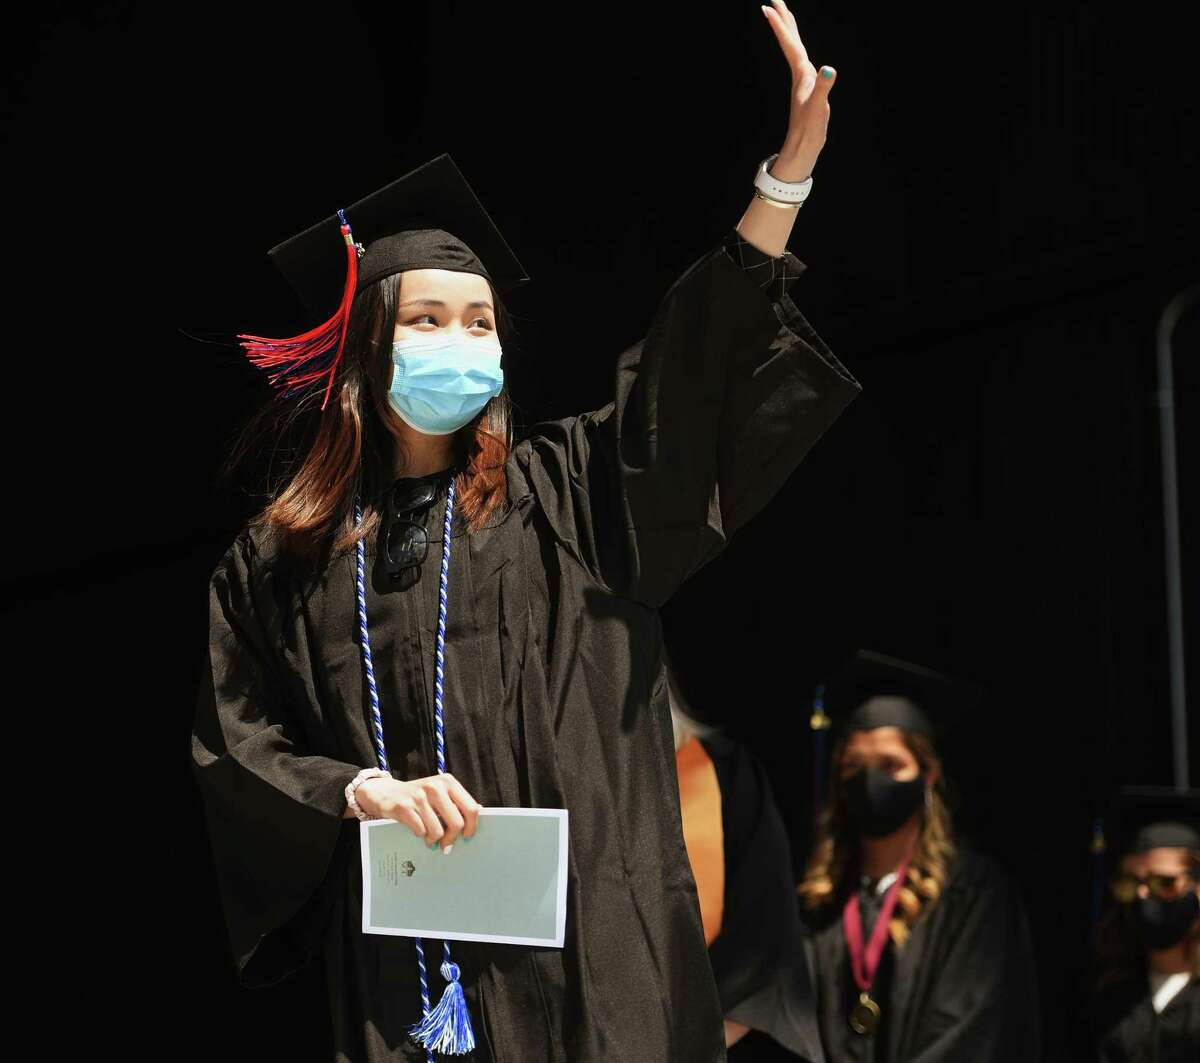 Graduate Qiuyun Huang waves to family as she crosses the stage to receive her diploma at the Norwalk Community College graduation at the new Hartford Healthcare Amphitheater in Bridgeport, Conn. on Thursday, May 20, 2021.